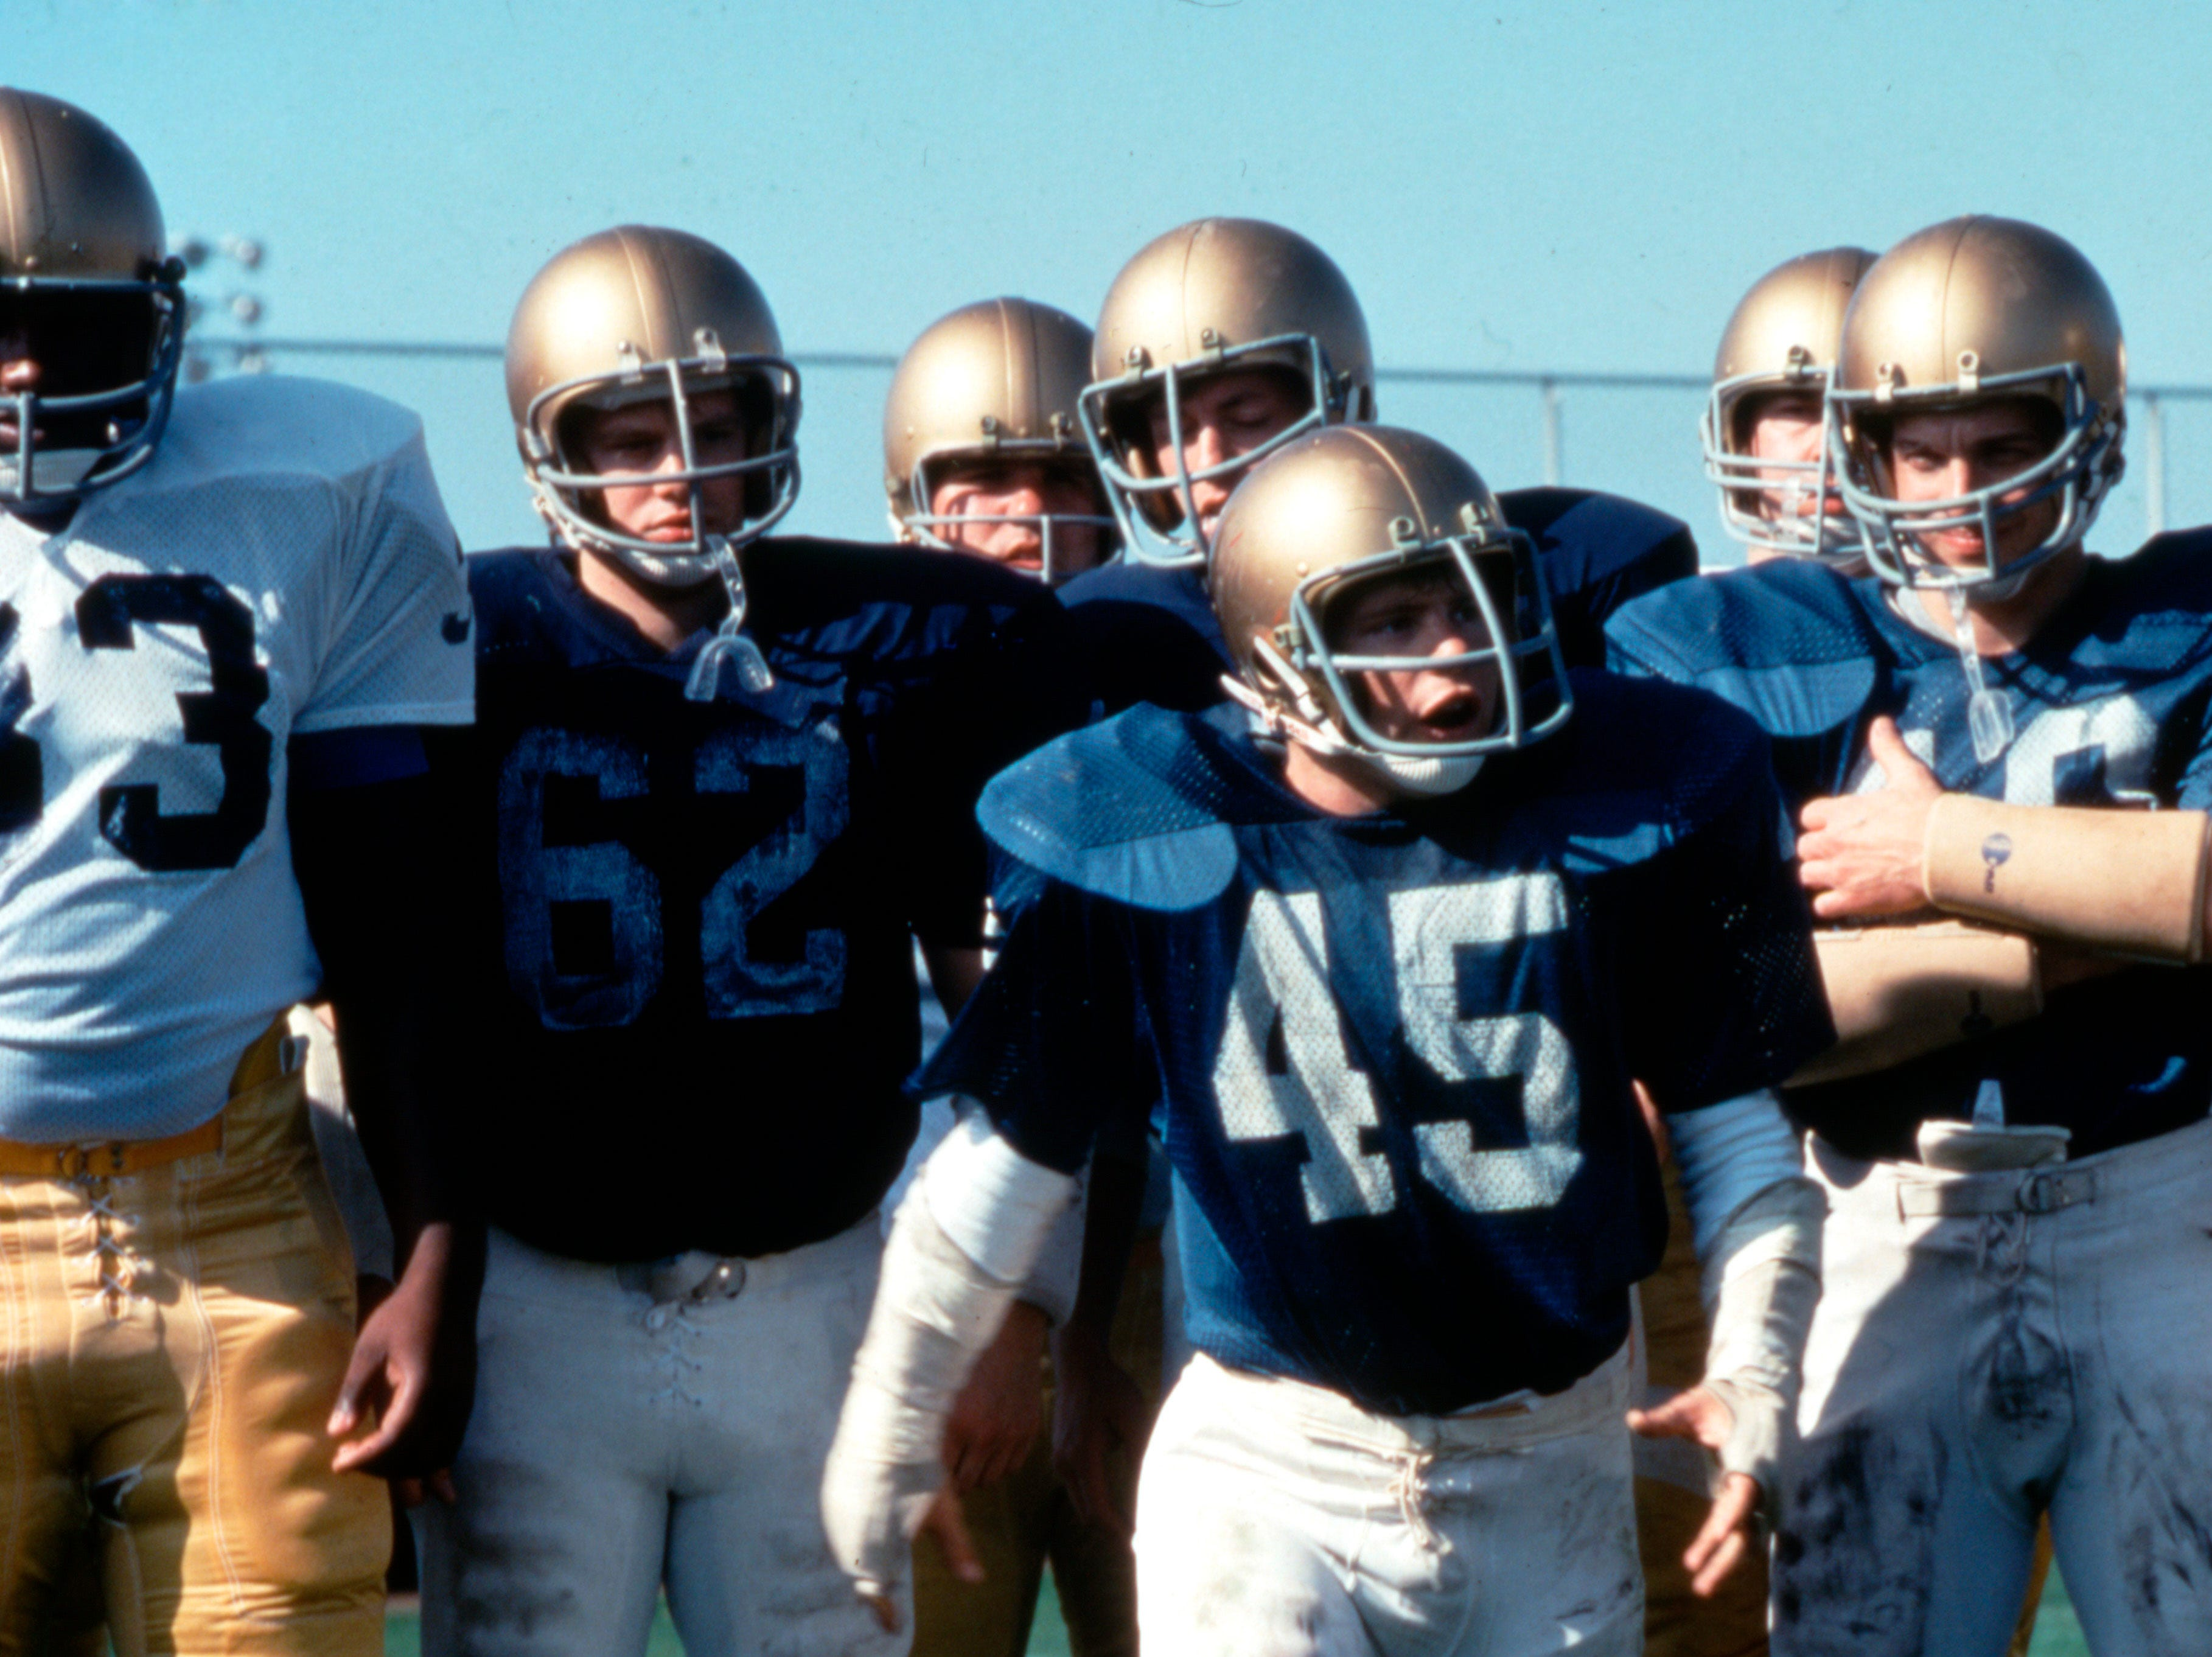 Rudy Ruettiger (Sean Astin) played his heart out on Notre Dame's practice squad.